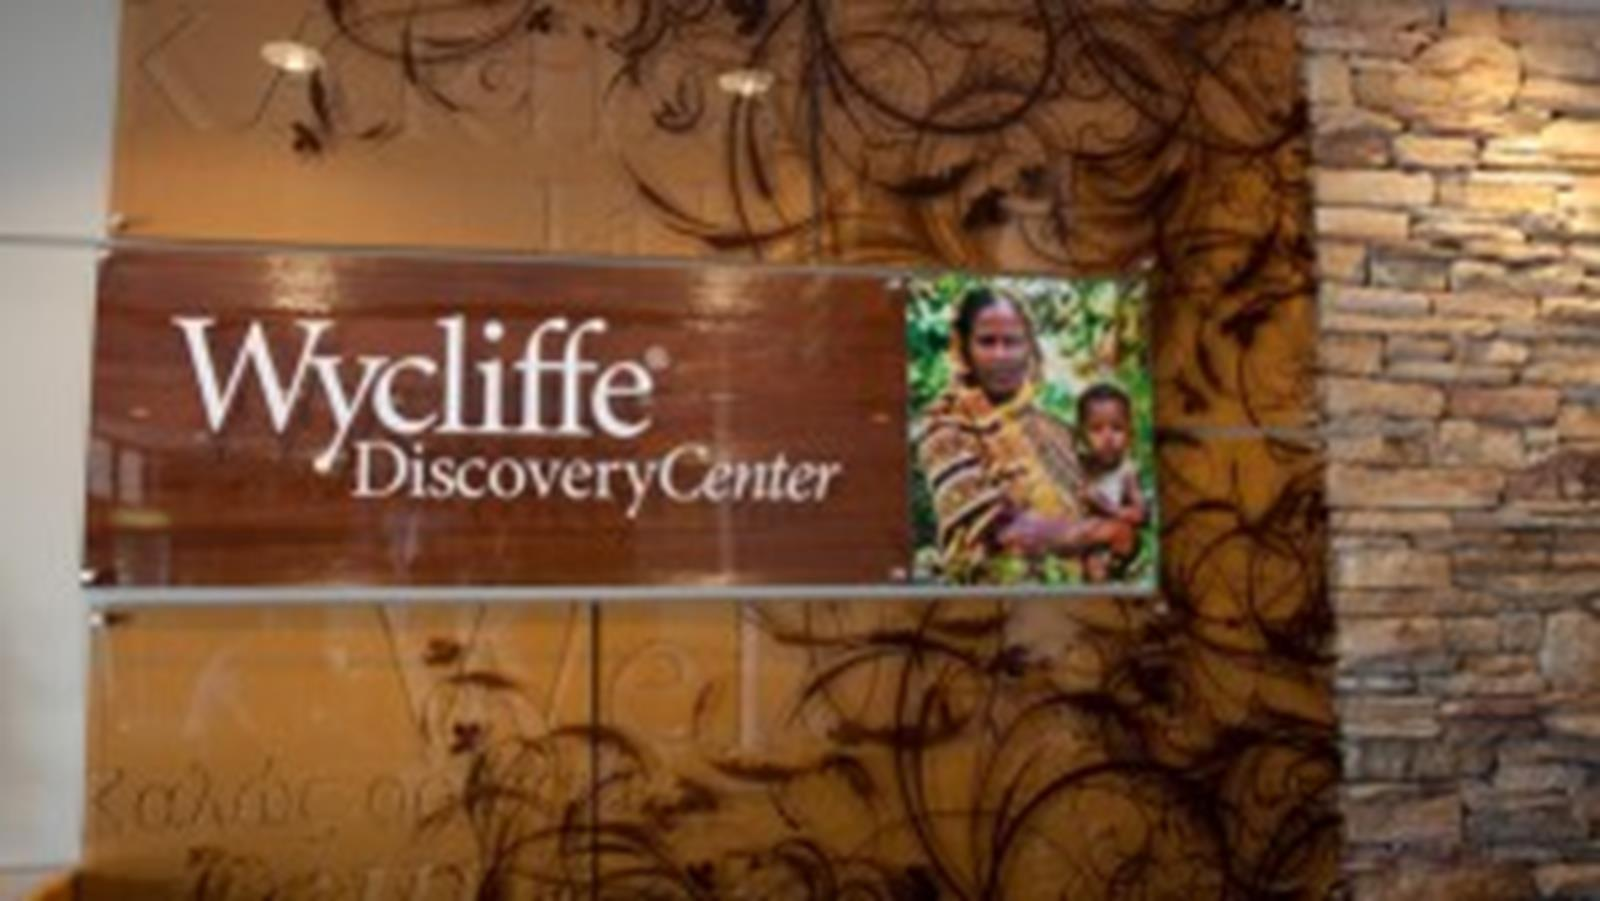 Wycliffe Discovery Center